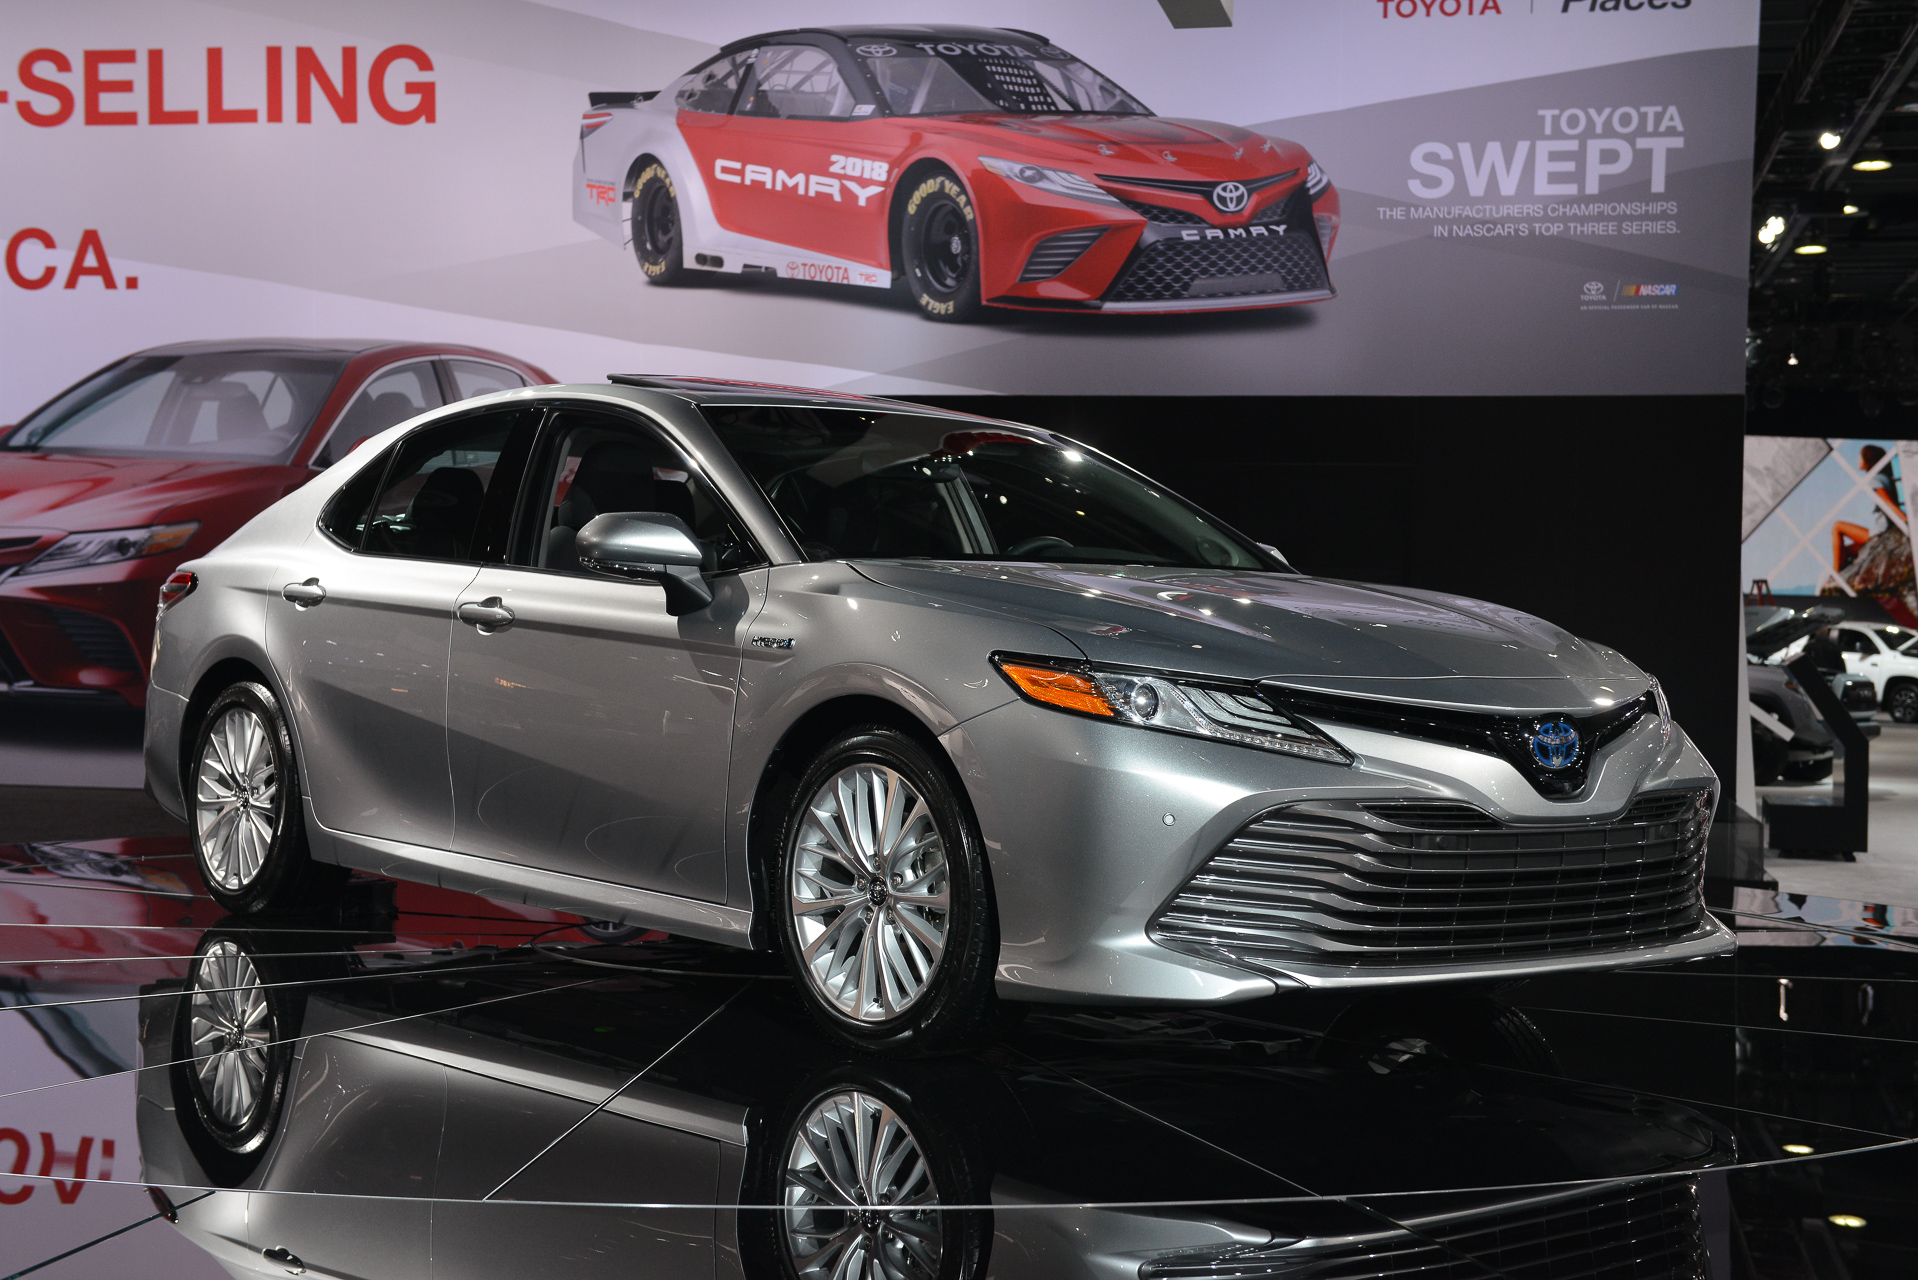 2018 Toyota Camry Hybrid Two Diffe Battery Packs Best In Cl Fuel Economy Claimed